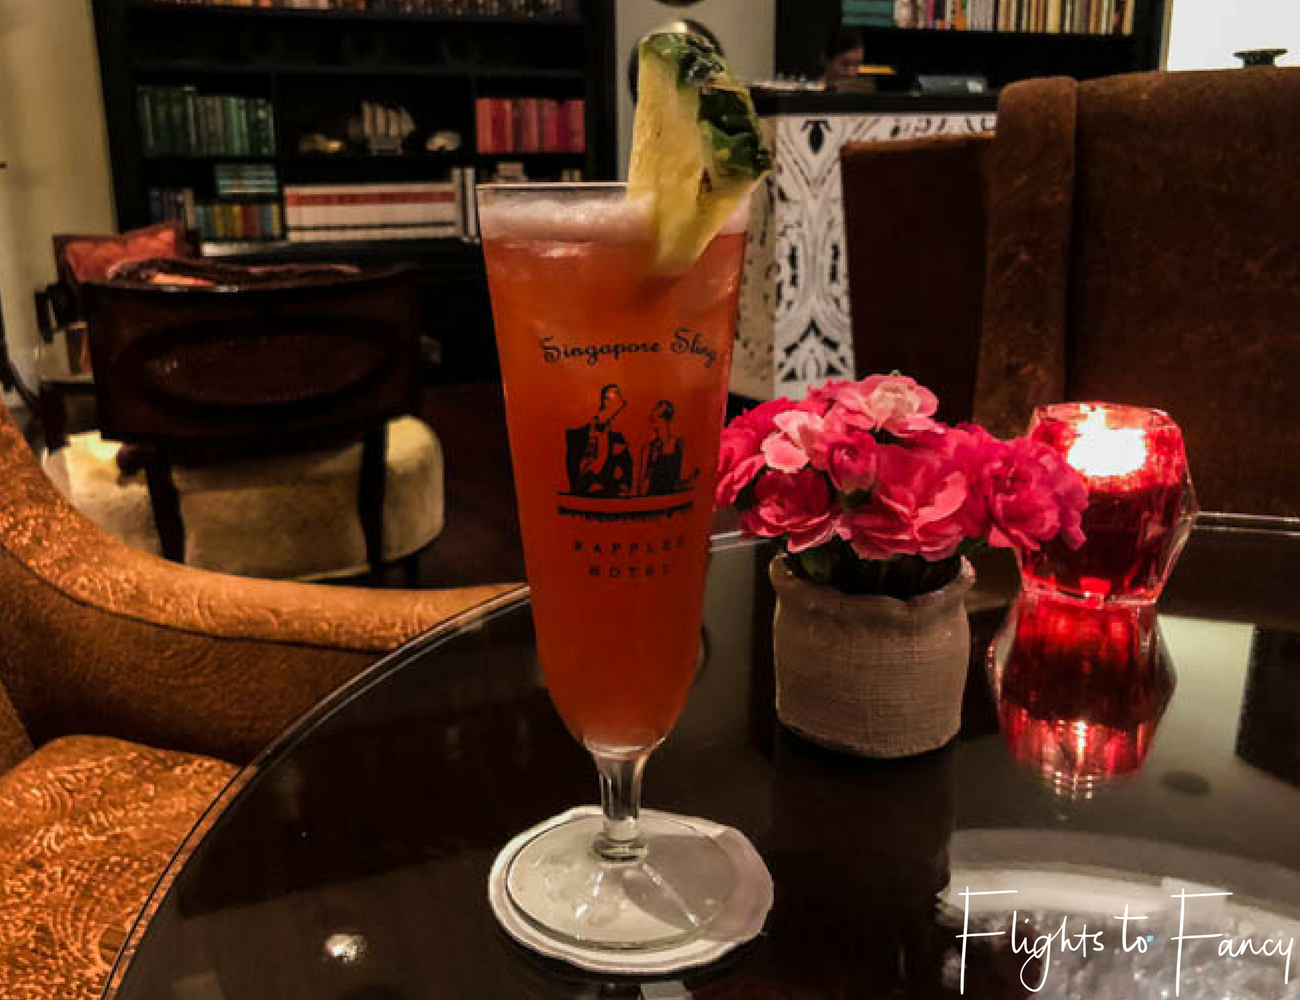 Flights To Fancy @ Raffles Makati Manila - Who can resist a Singapore Sling